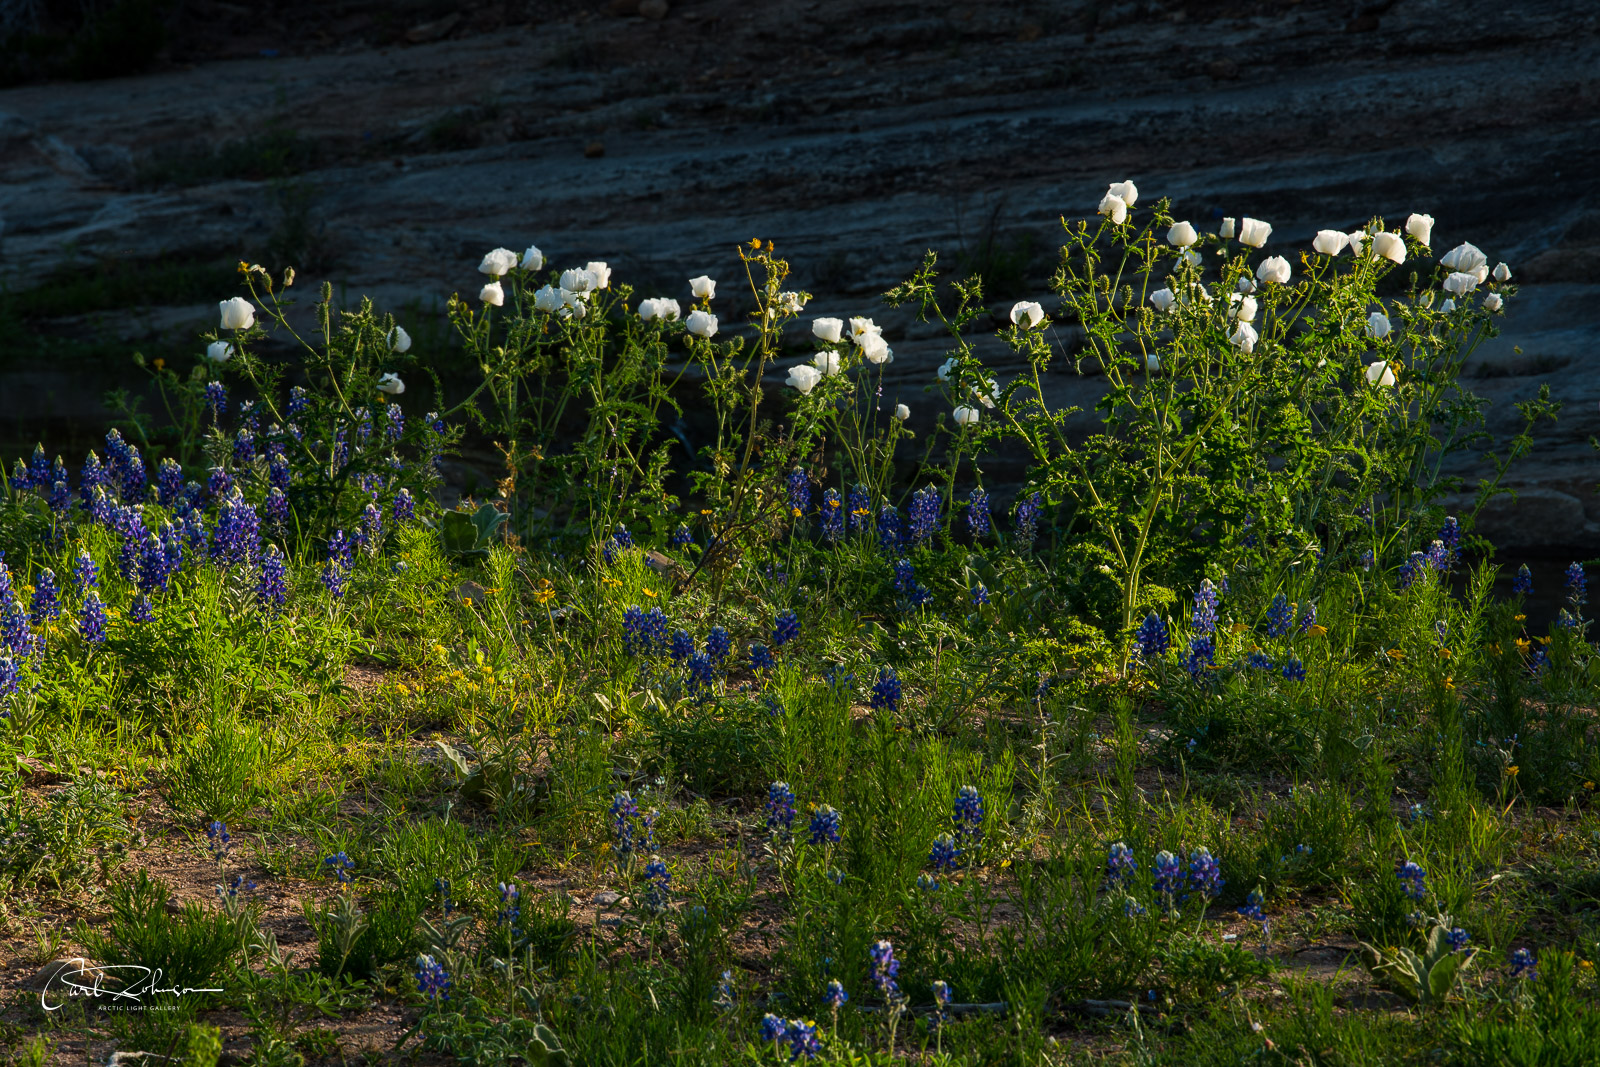 A patch of white prickly Poppy and some bluebonnets catch the morning light against the shadow of a cliff along a stream near...